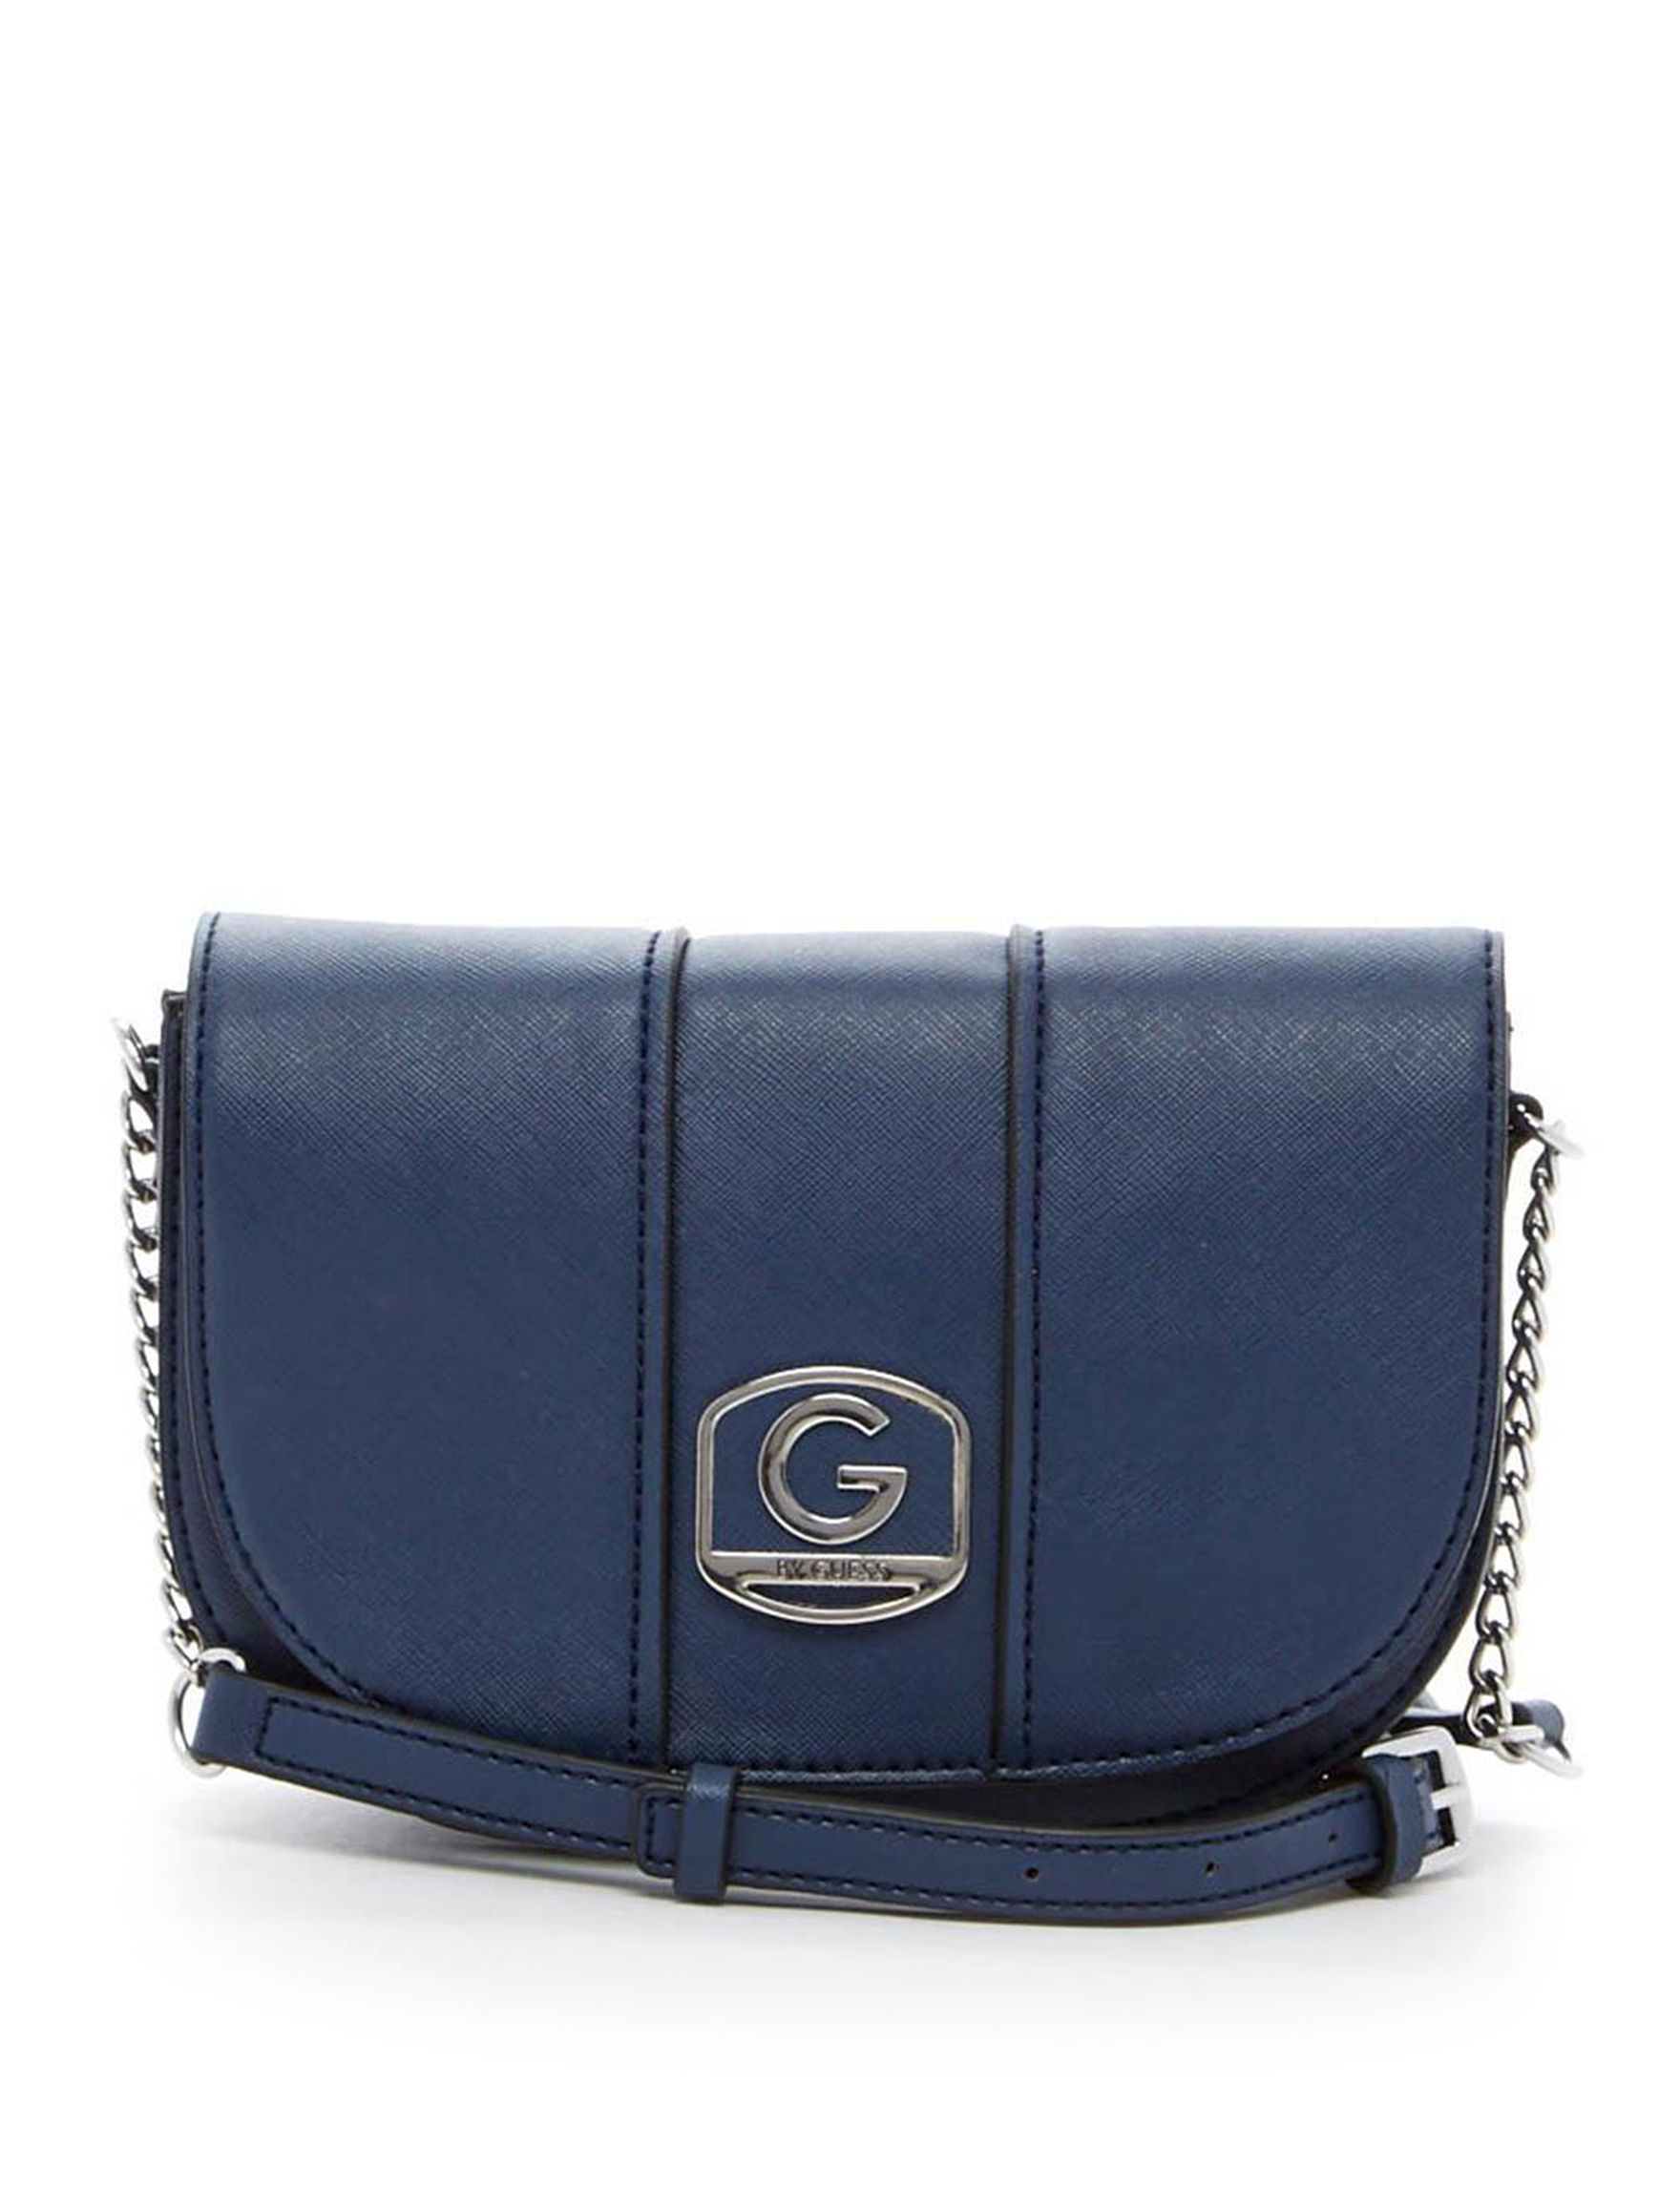 guess factory outlet canada e0g5  Guess Casey Top Handle Flap Handbag In Black Lyst